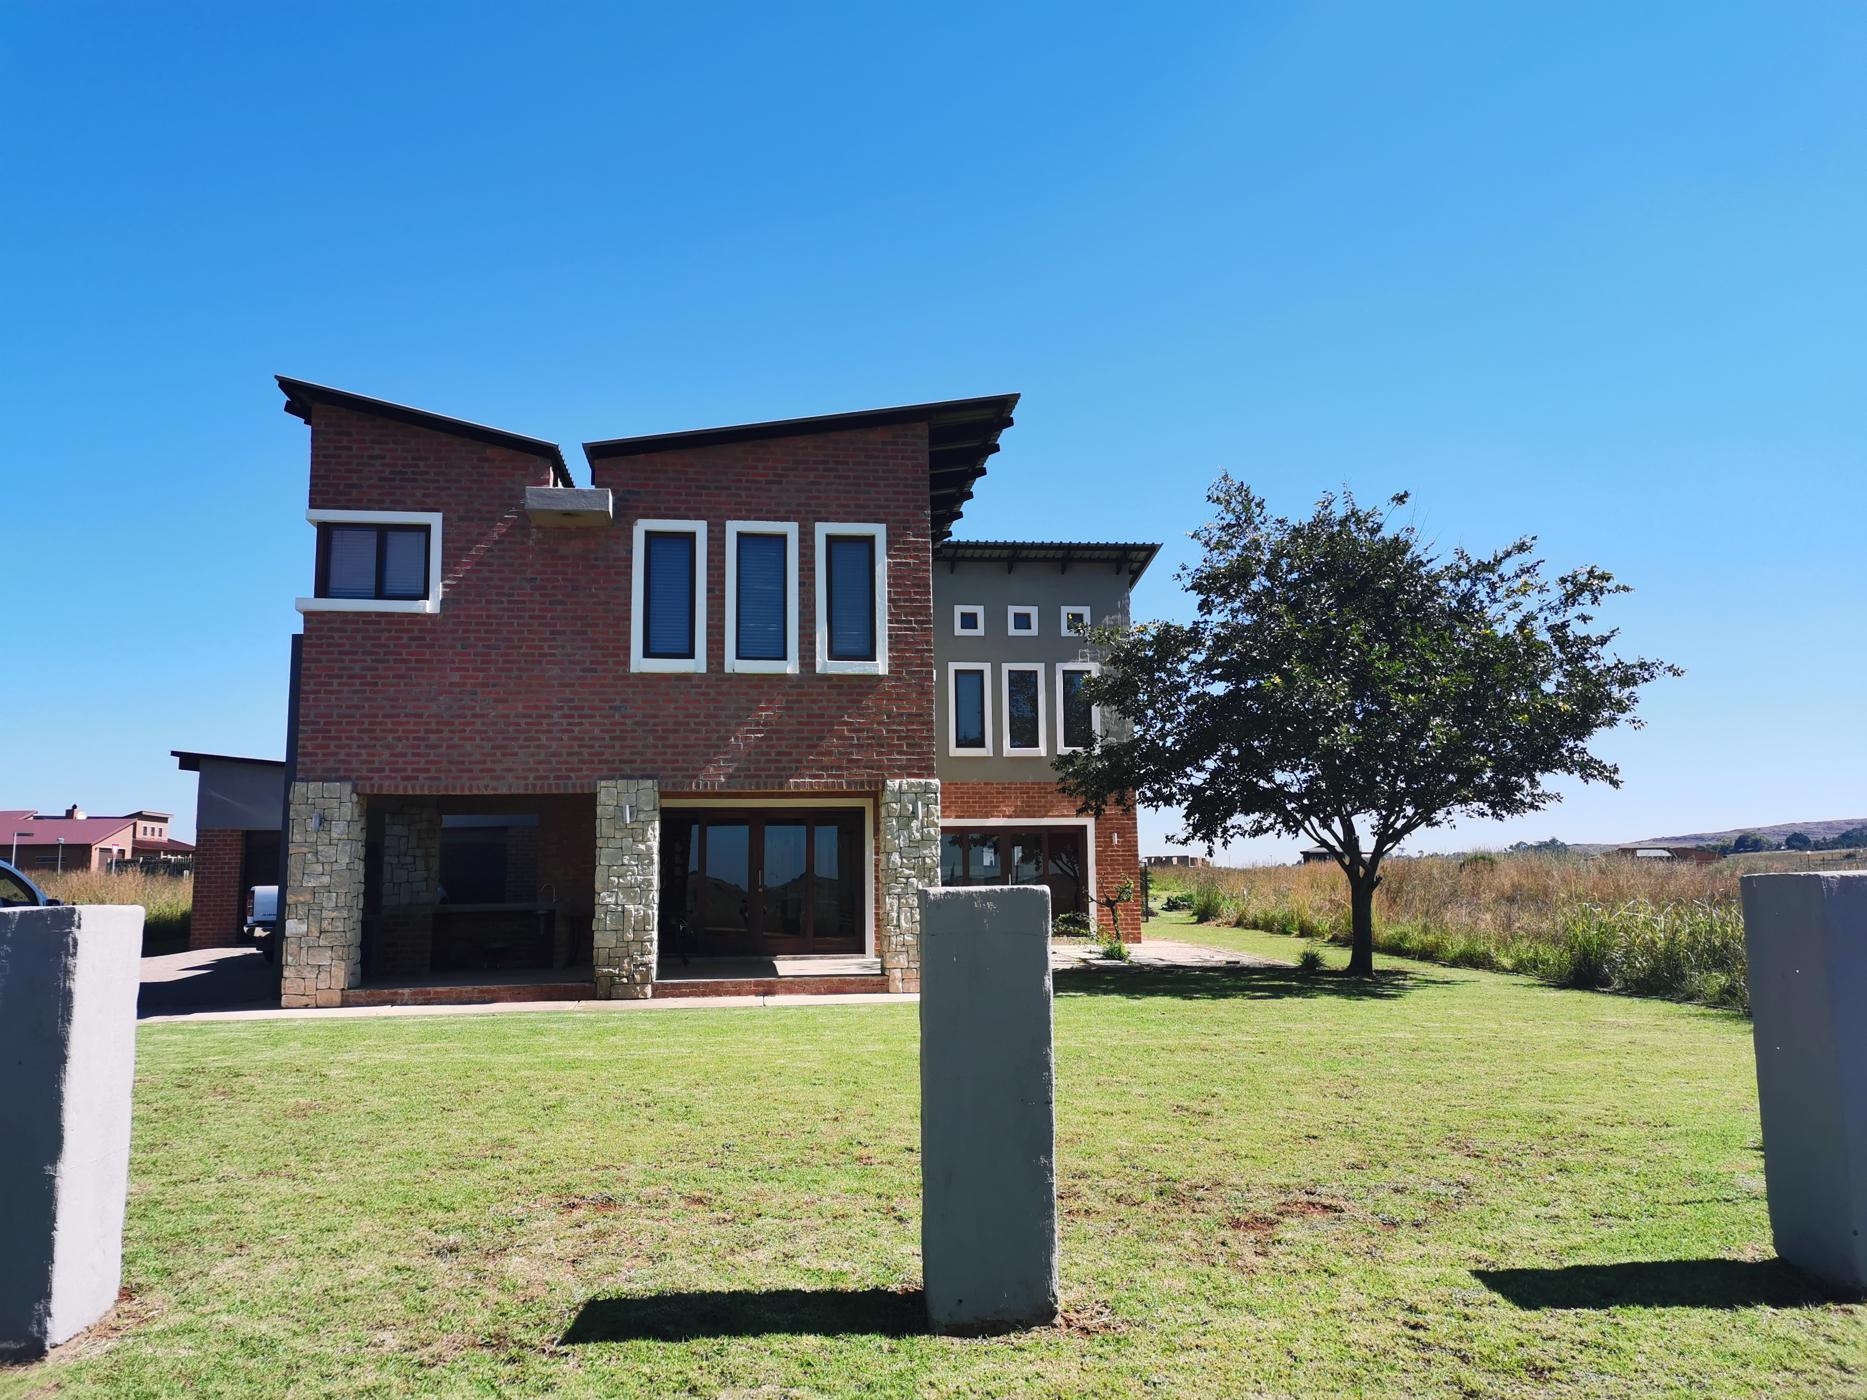 https://listing.pamgolding.co.za/images/properties/201905/1332959/H/1332959_H_1.jpg